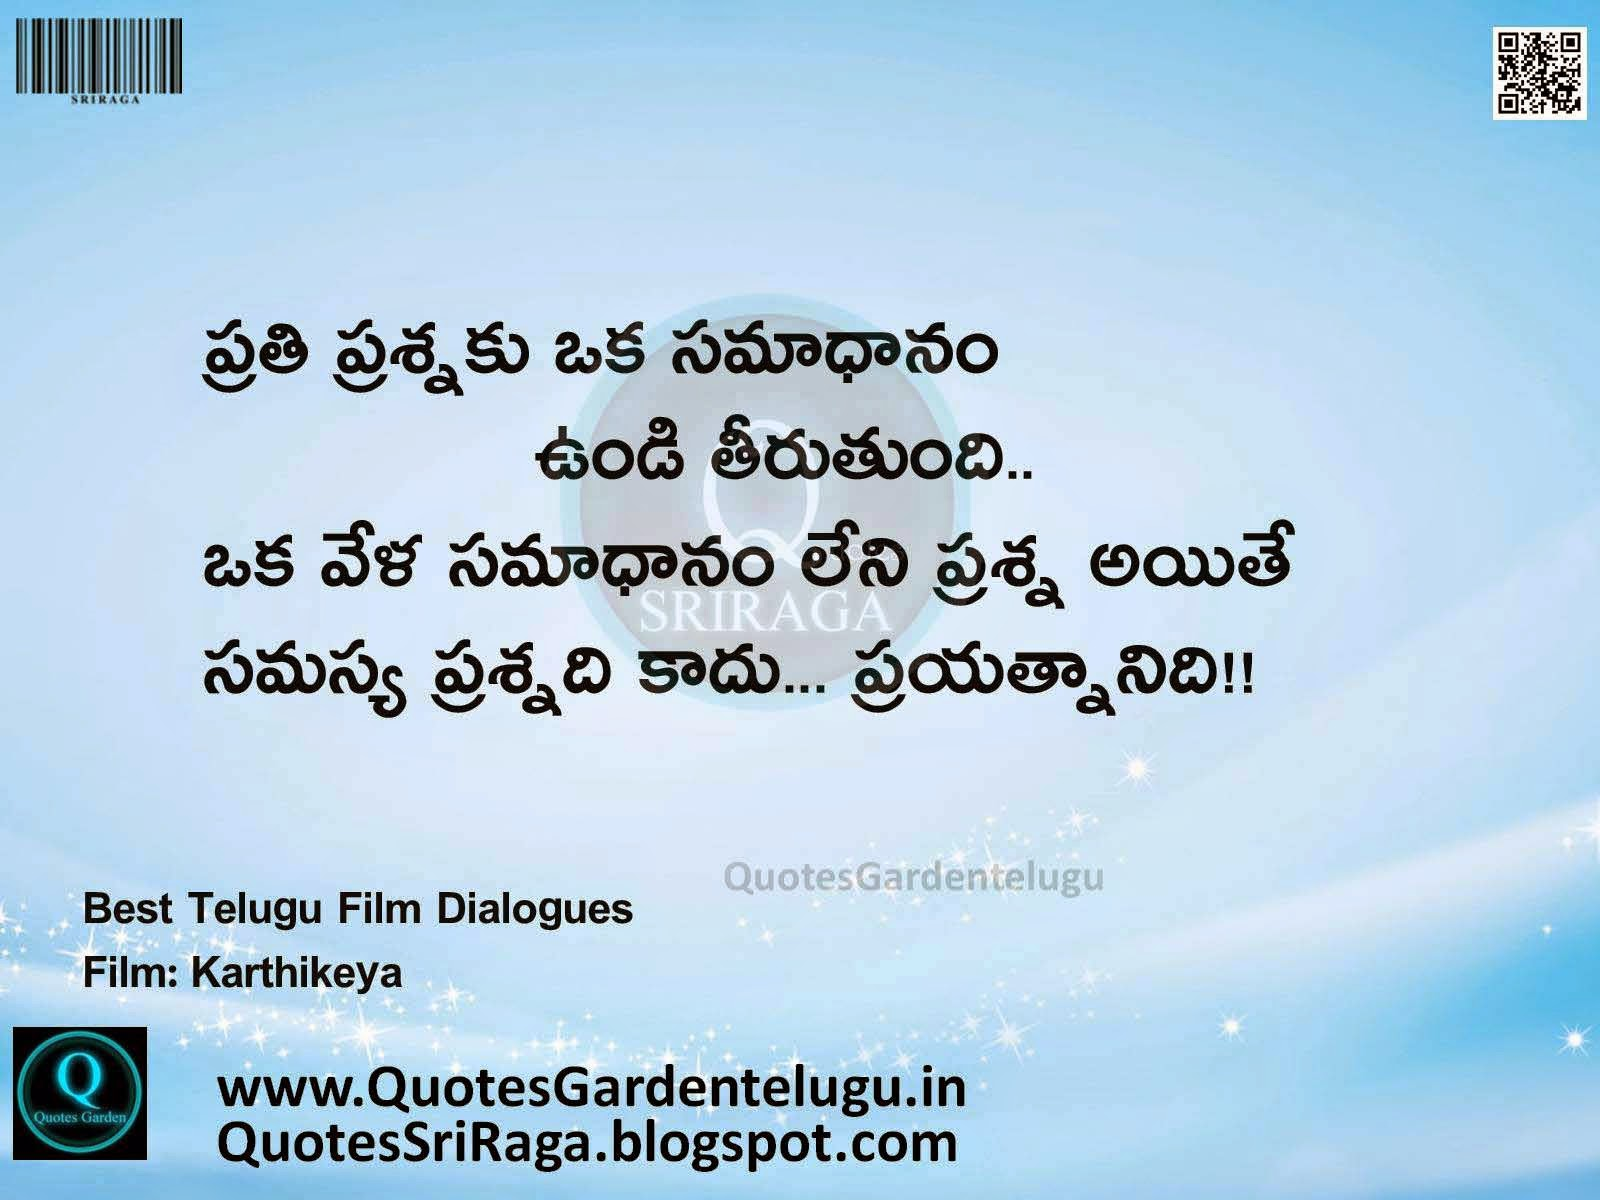 Best Telugu Film Dialogues Telugu Film Inspirational Dialogues Punch Dialogues Quotes with images